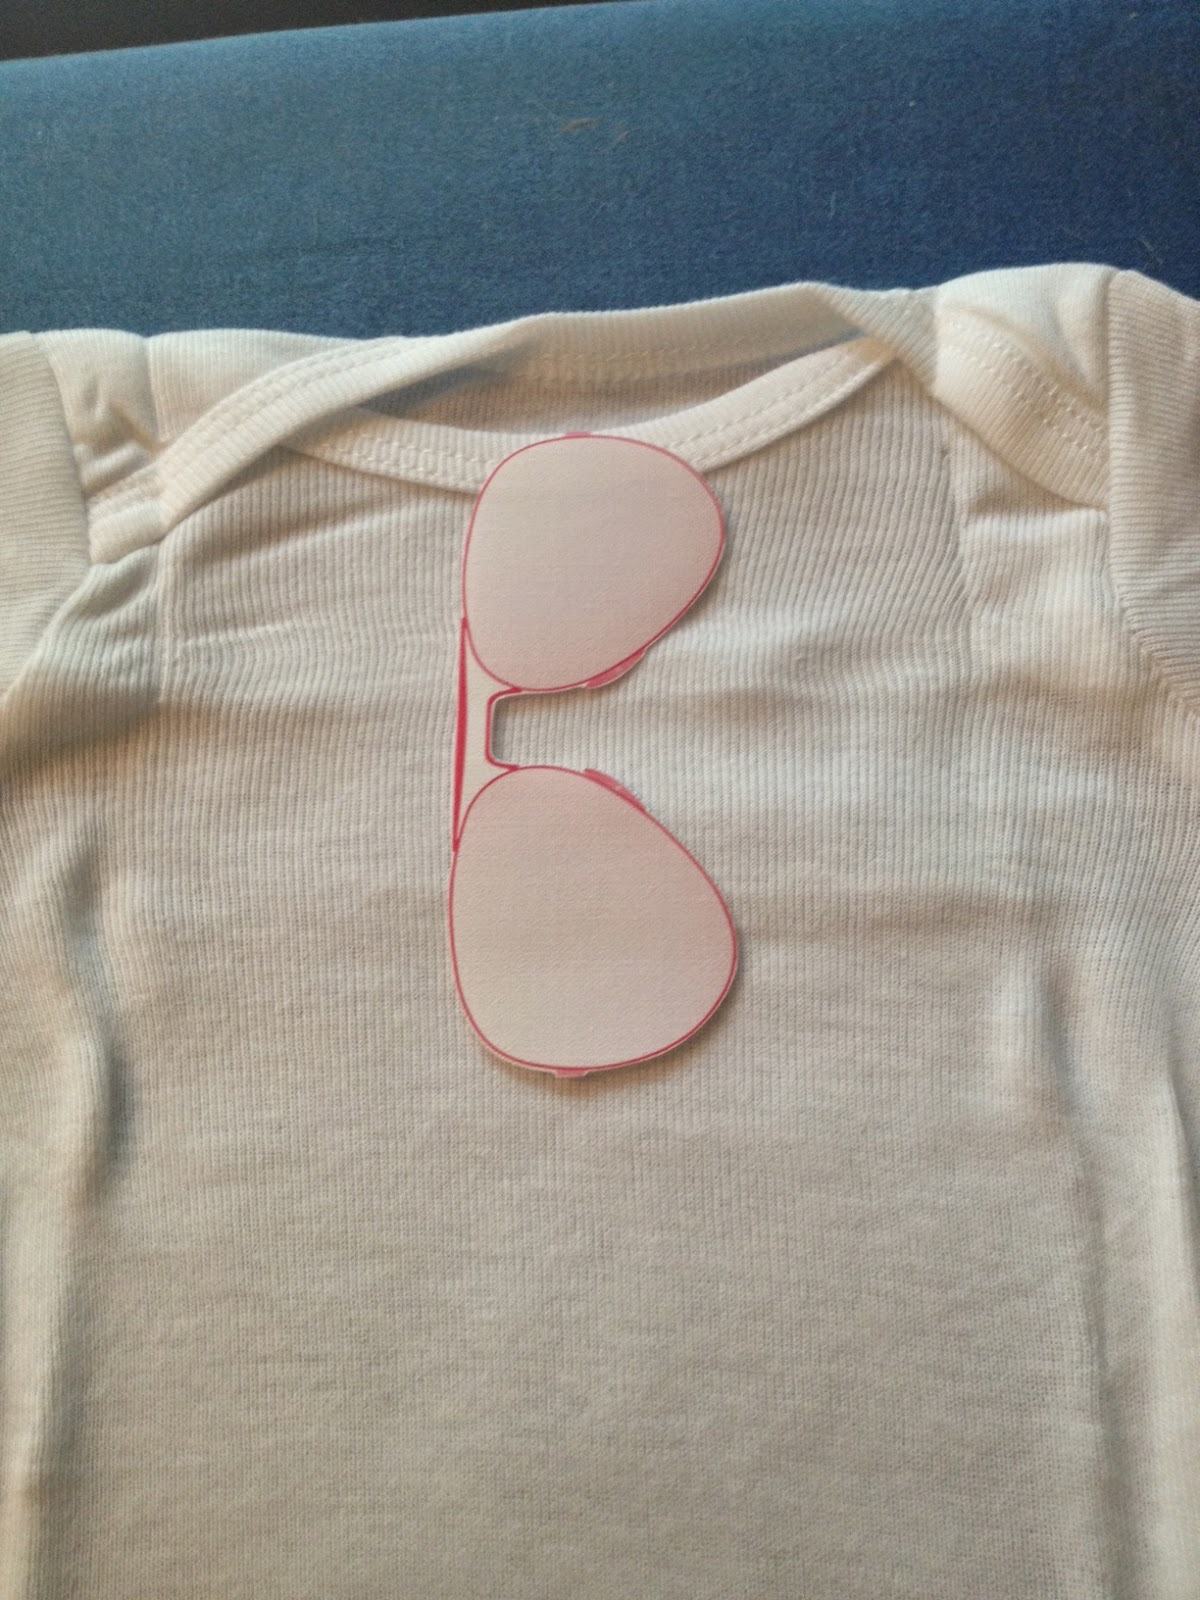 Silhouette, print and cut, heat transfer, iron on, Silhouette tutorial, sunglasses, onesie